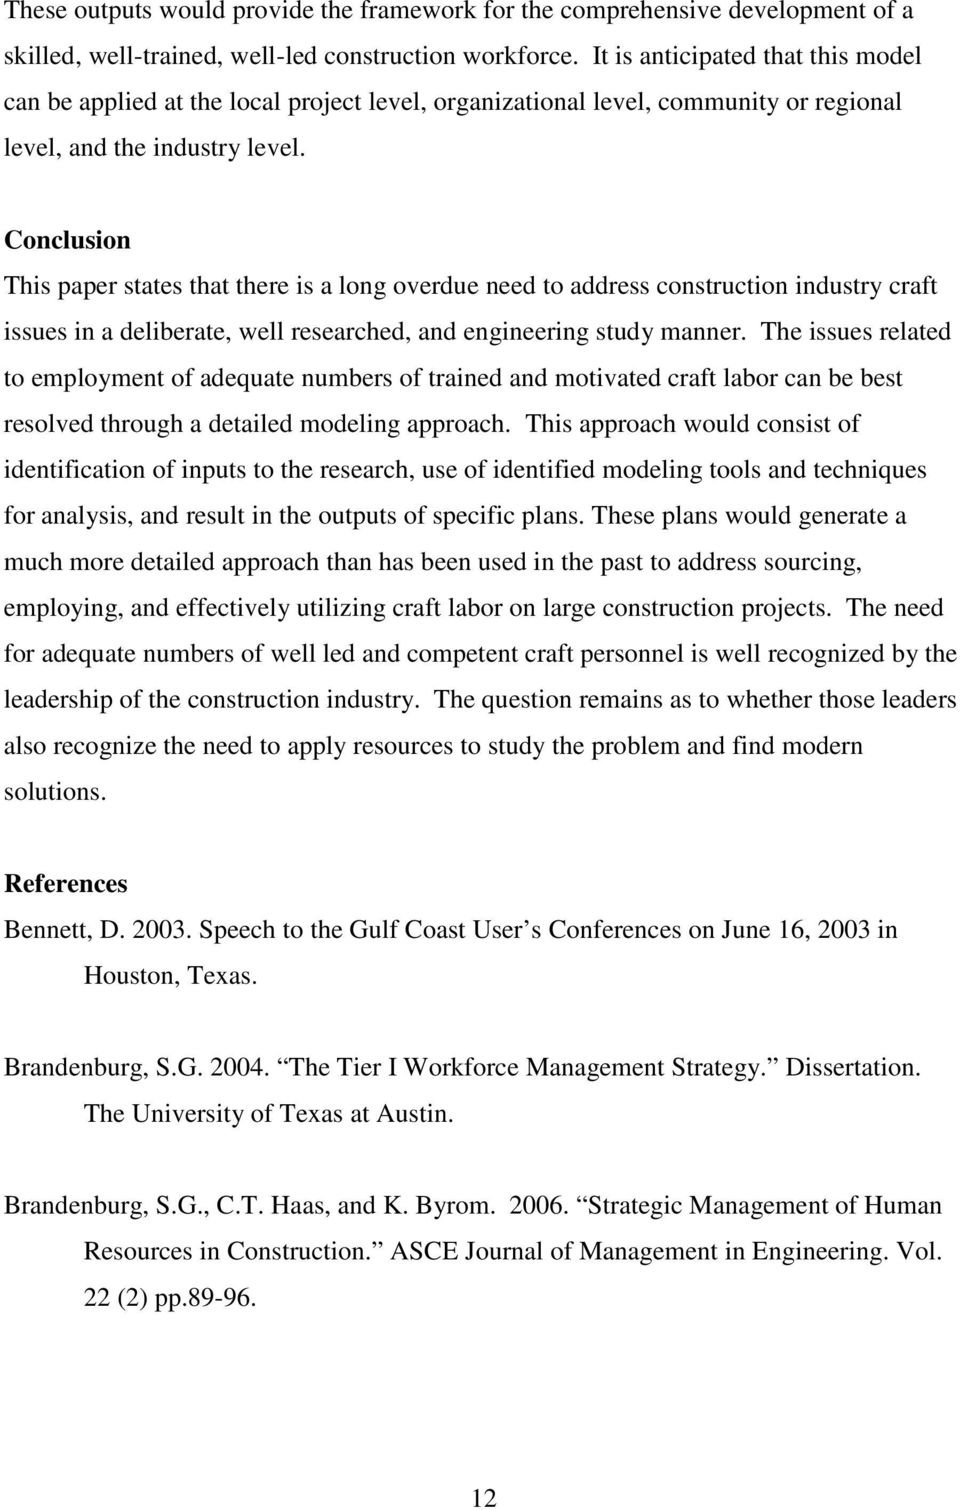 Conclusion This paper states that there is a long overdue need to address construction industry craft issues in a deliberate, well researched, and engineering study manner.